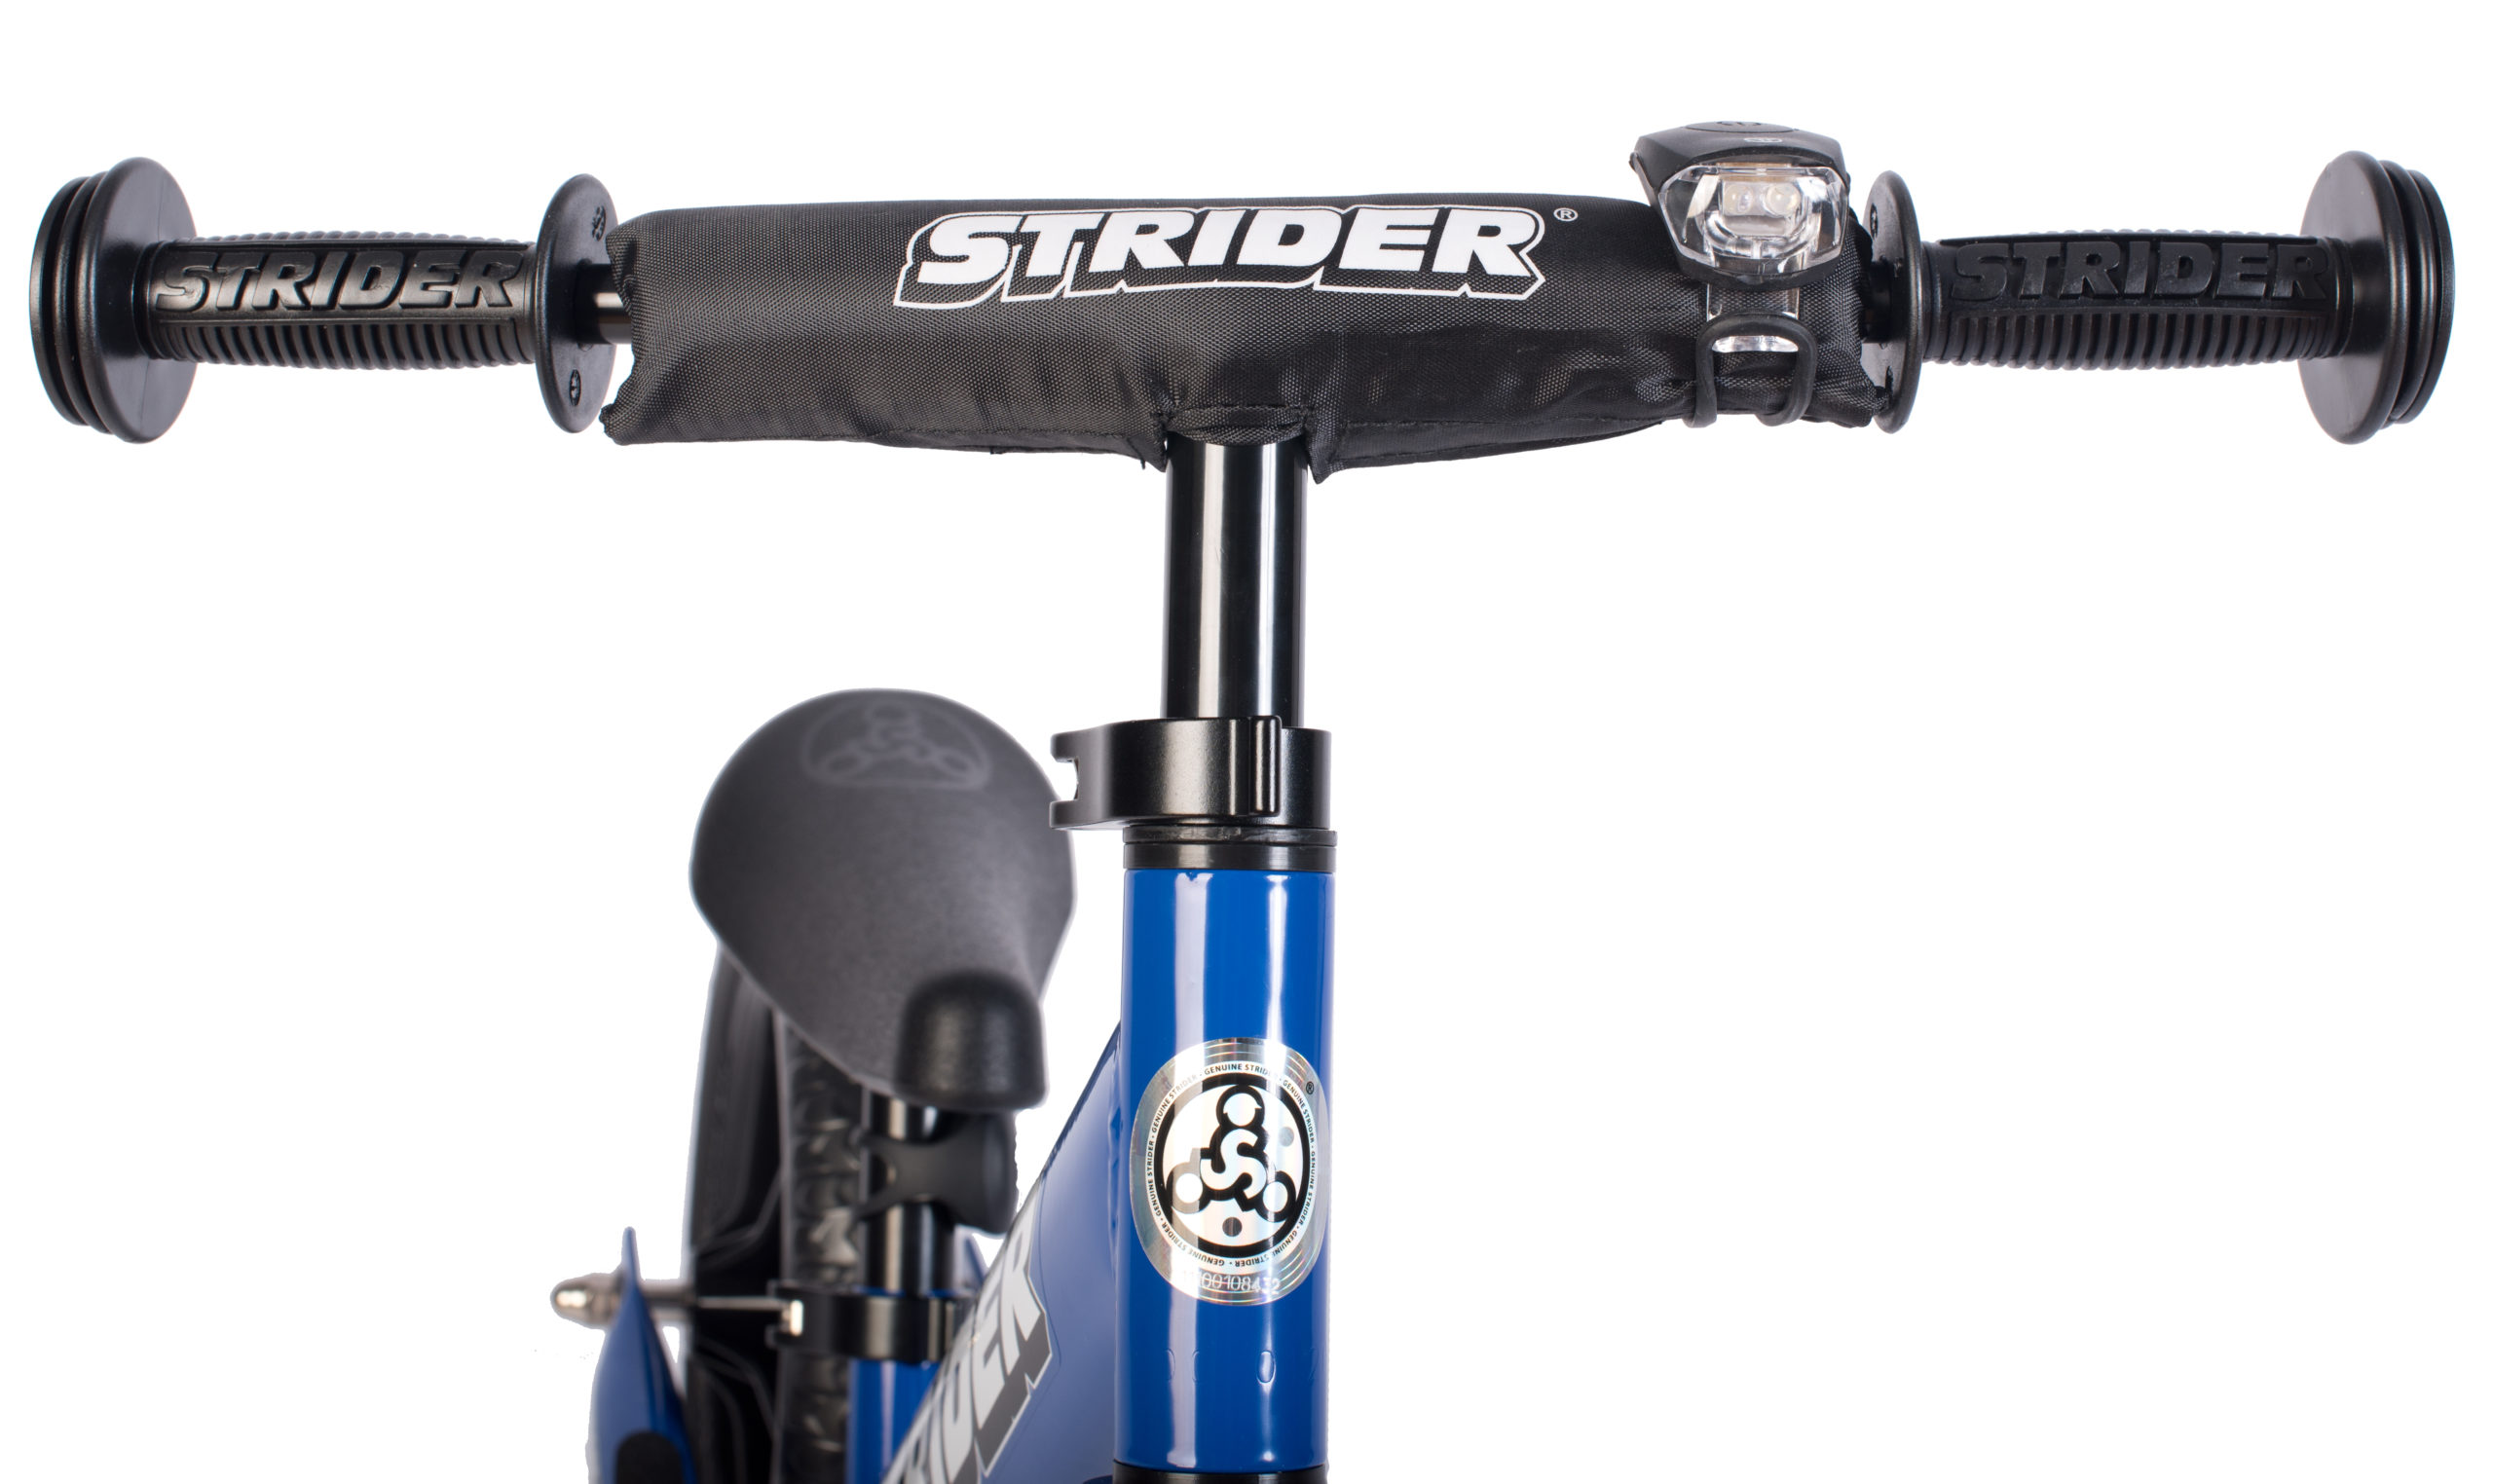 Studio image of Strider light on handlebar